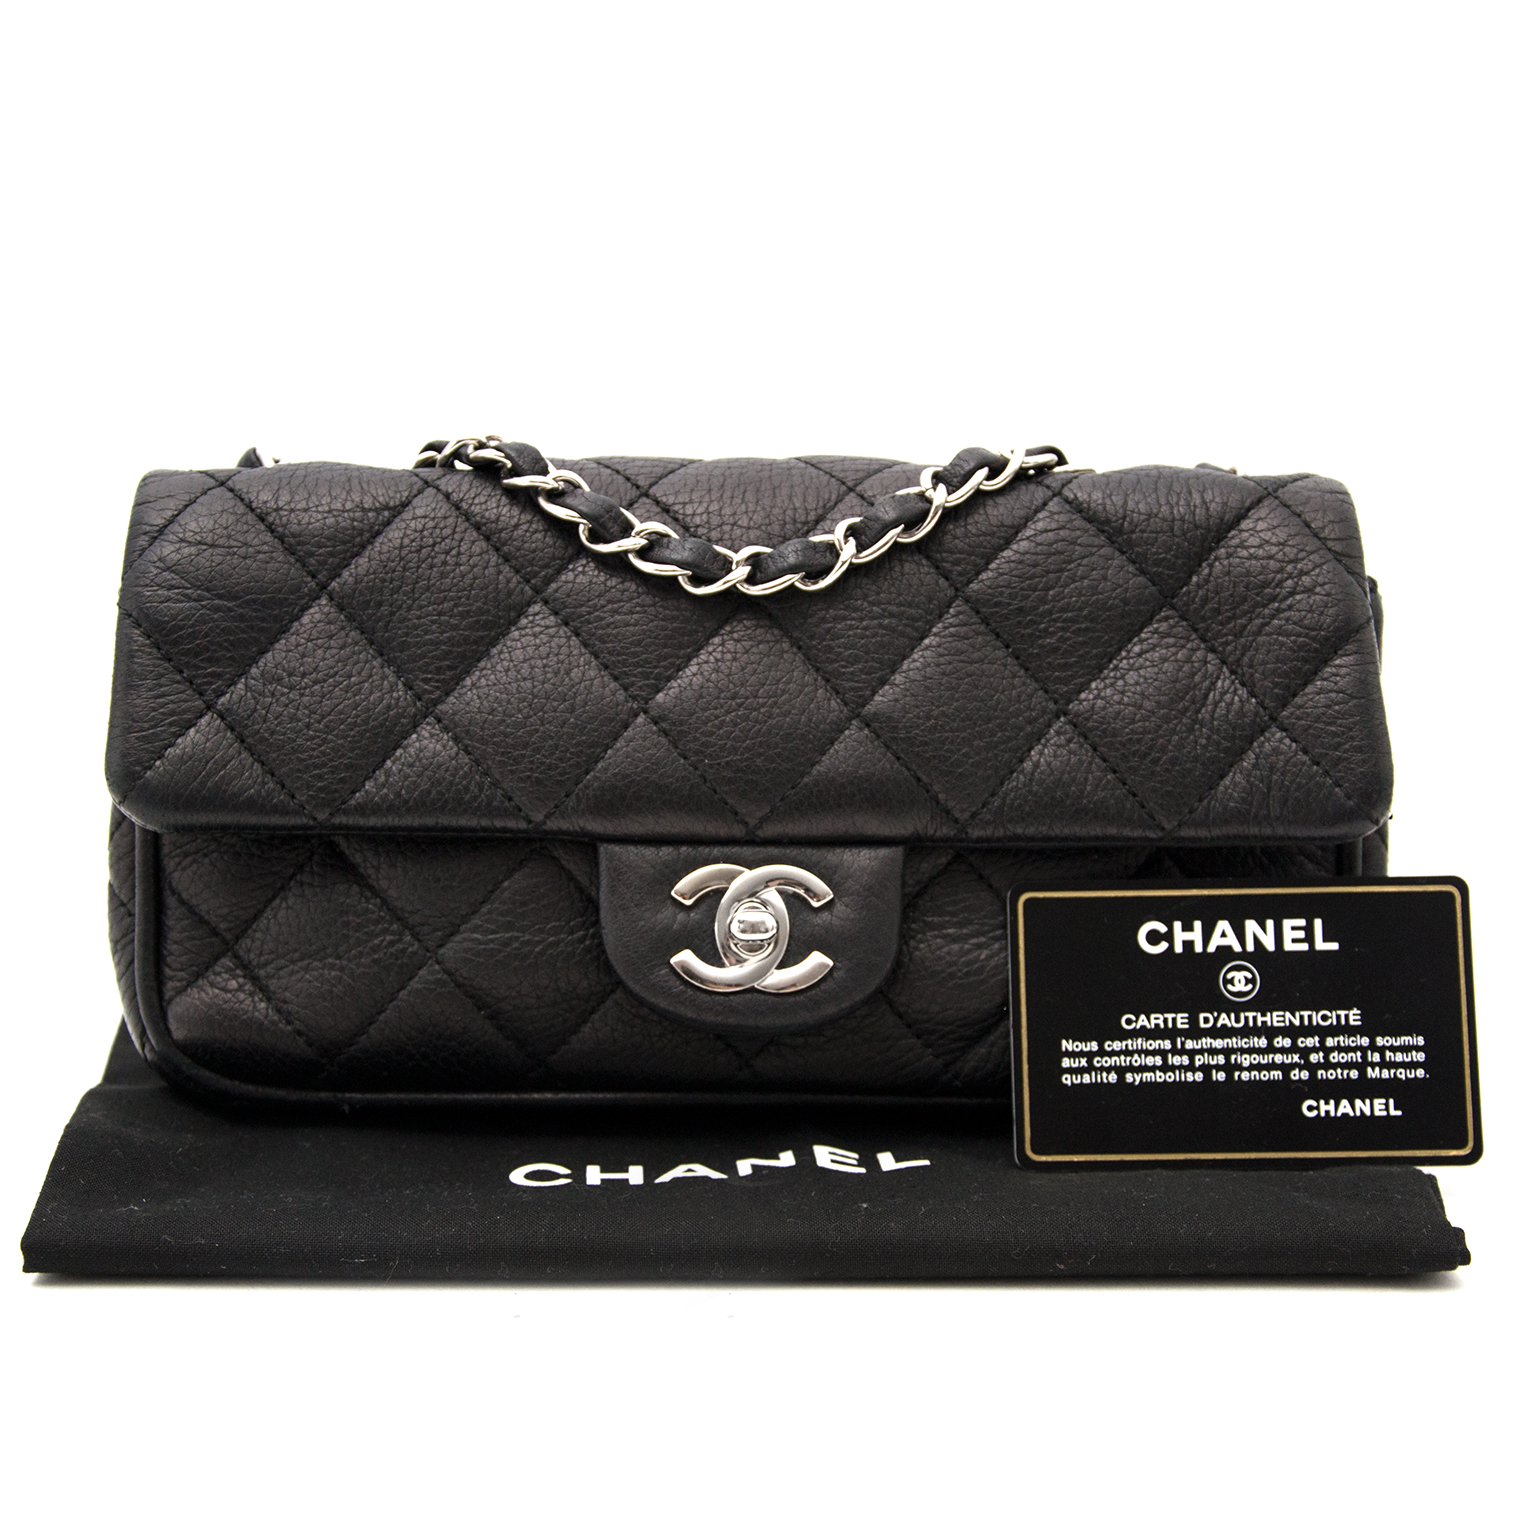 Looking for a Chanel Black East West Flap Bag?